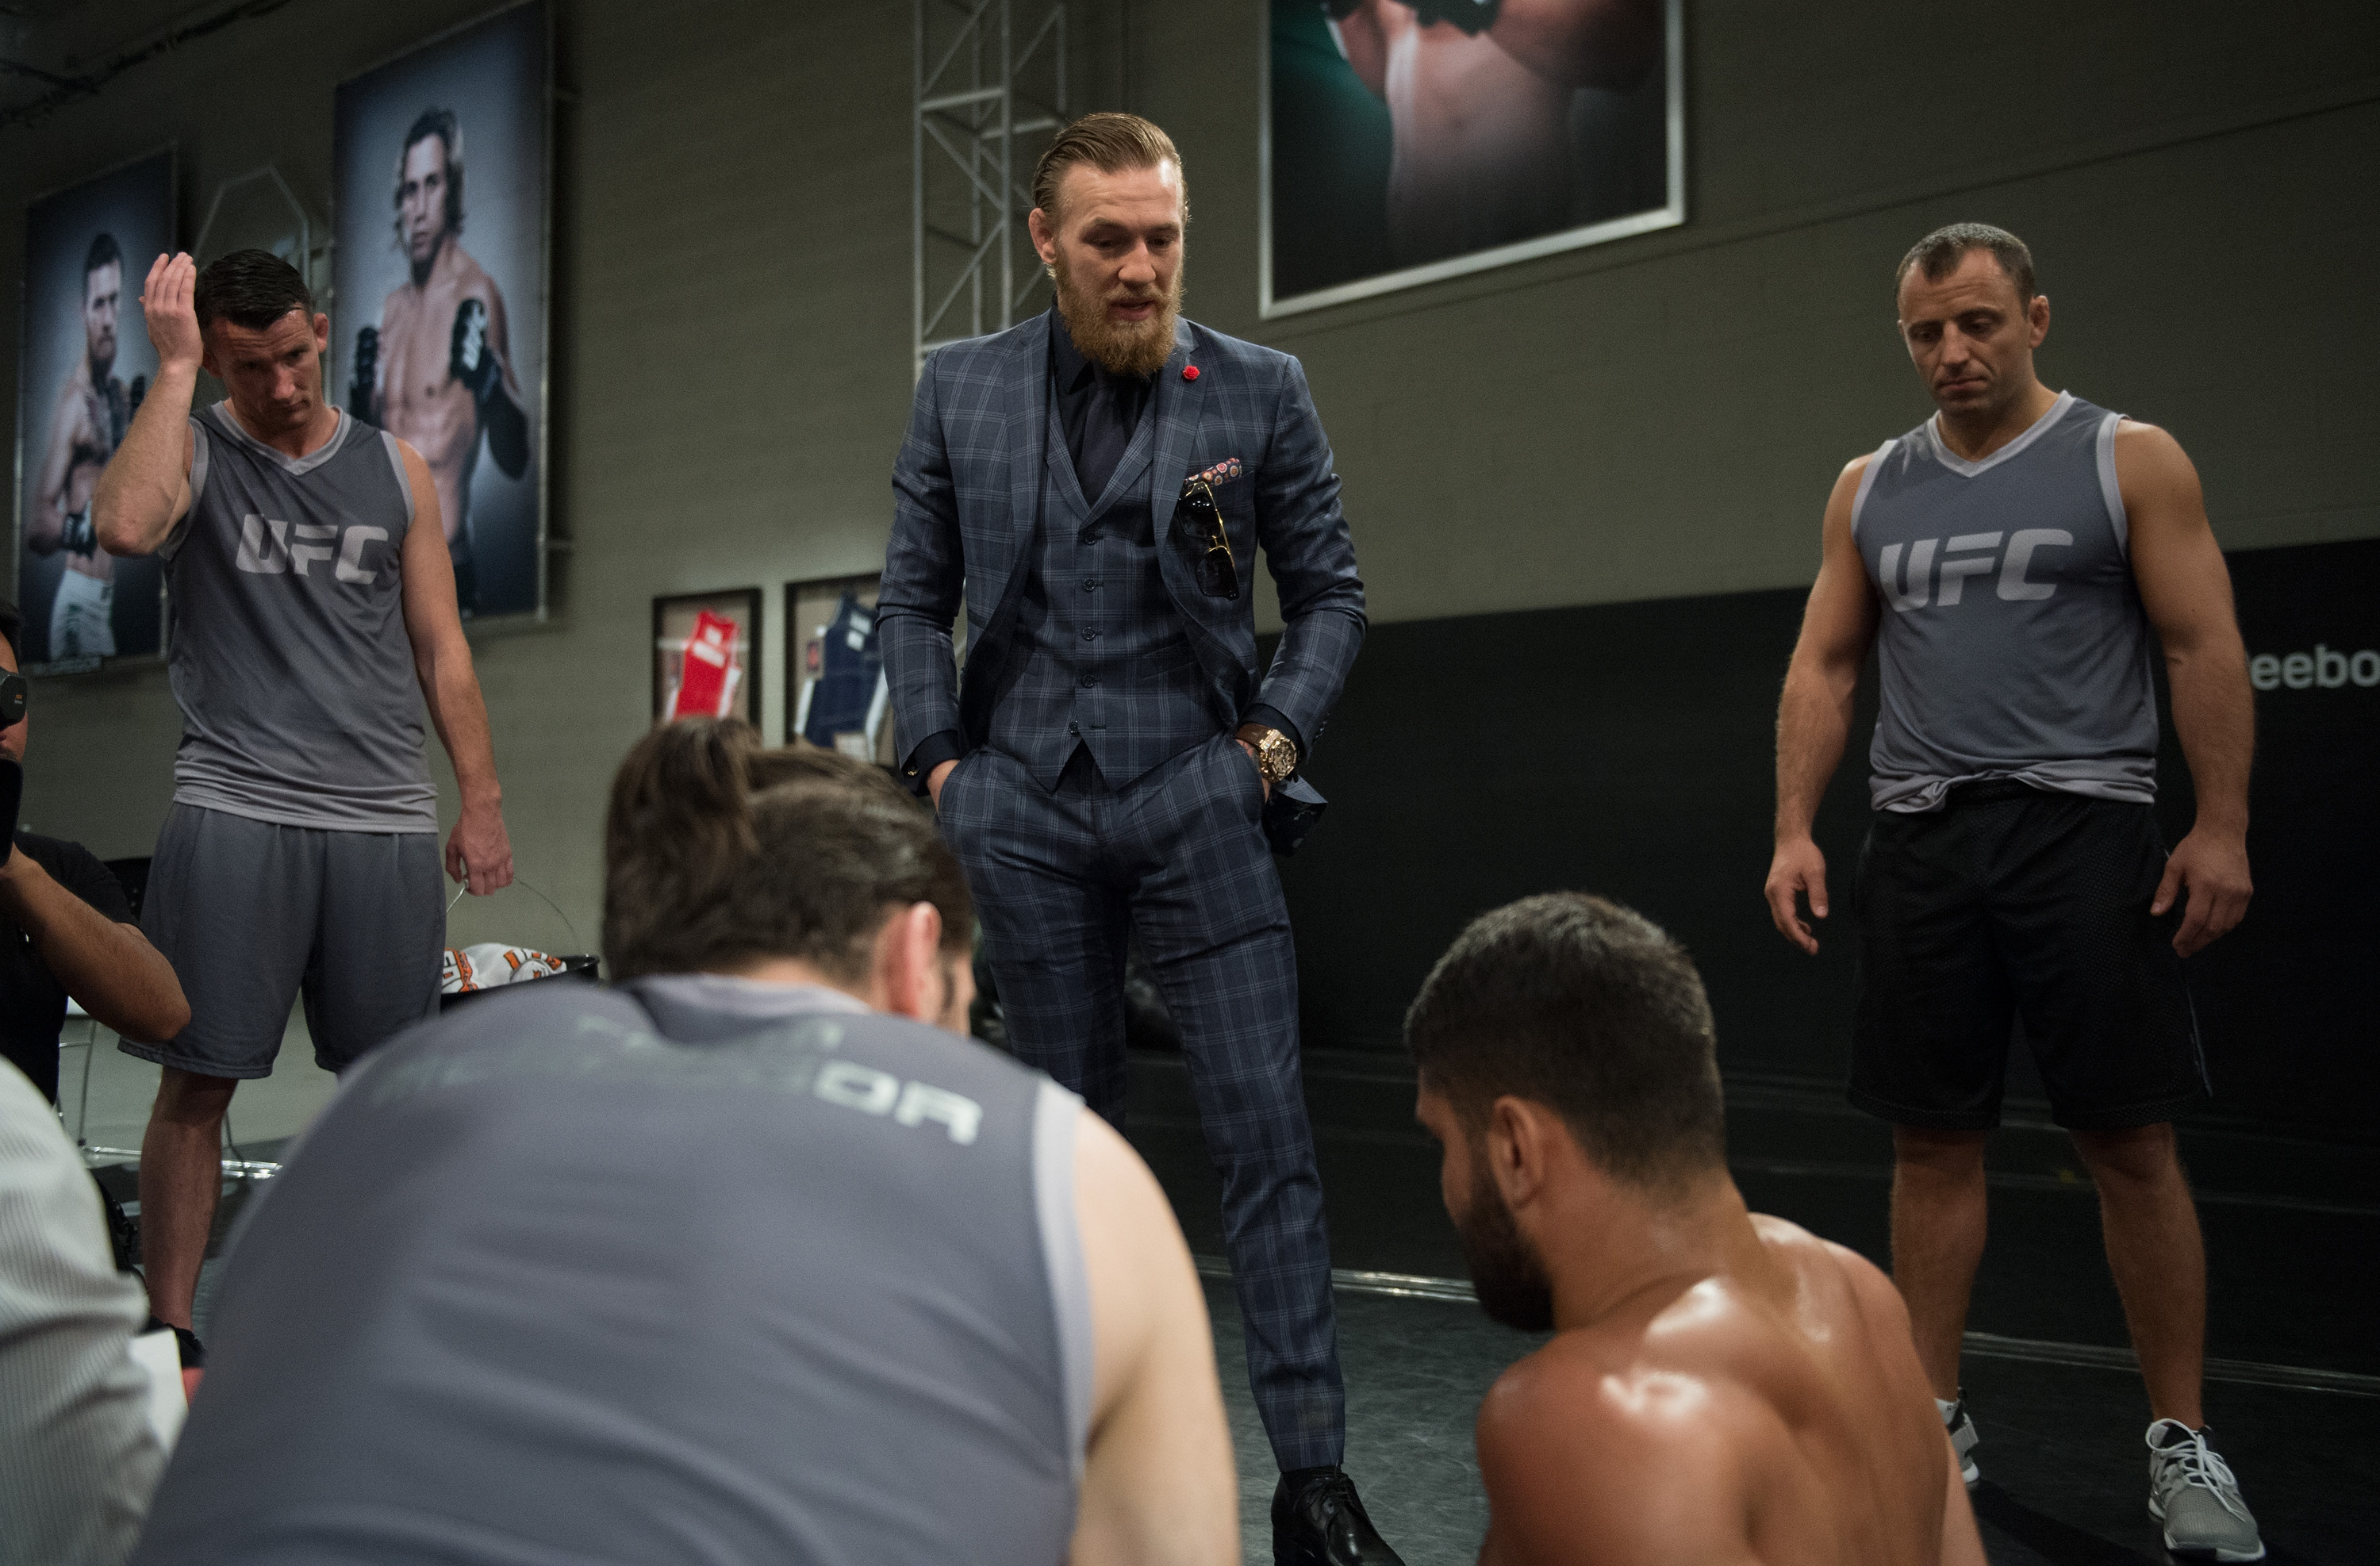 Head Coach Conor McGregor talks to his team after Frantz Slioa's submission loss to Ryan Hall during the filming of The Ultimate Fighter: Team McGregor vs Team Faber. (Brandon Magnus/Zuffa LLC)